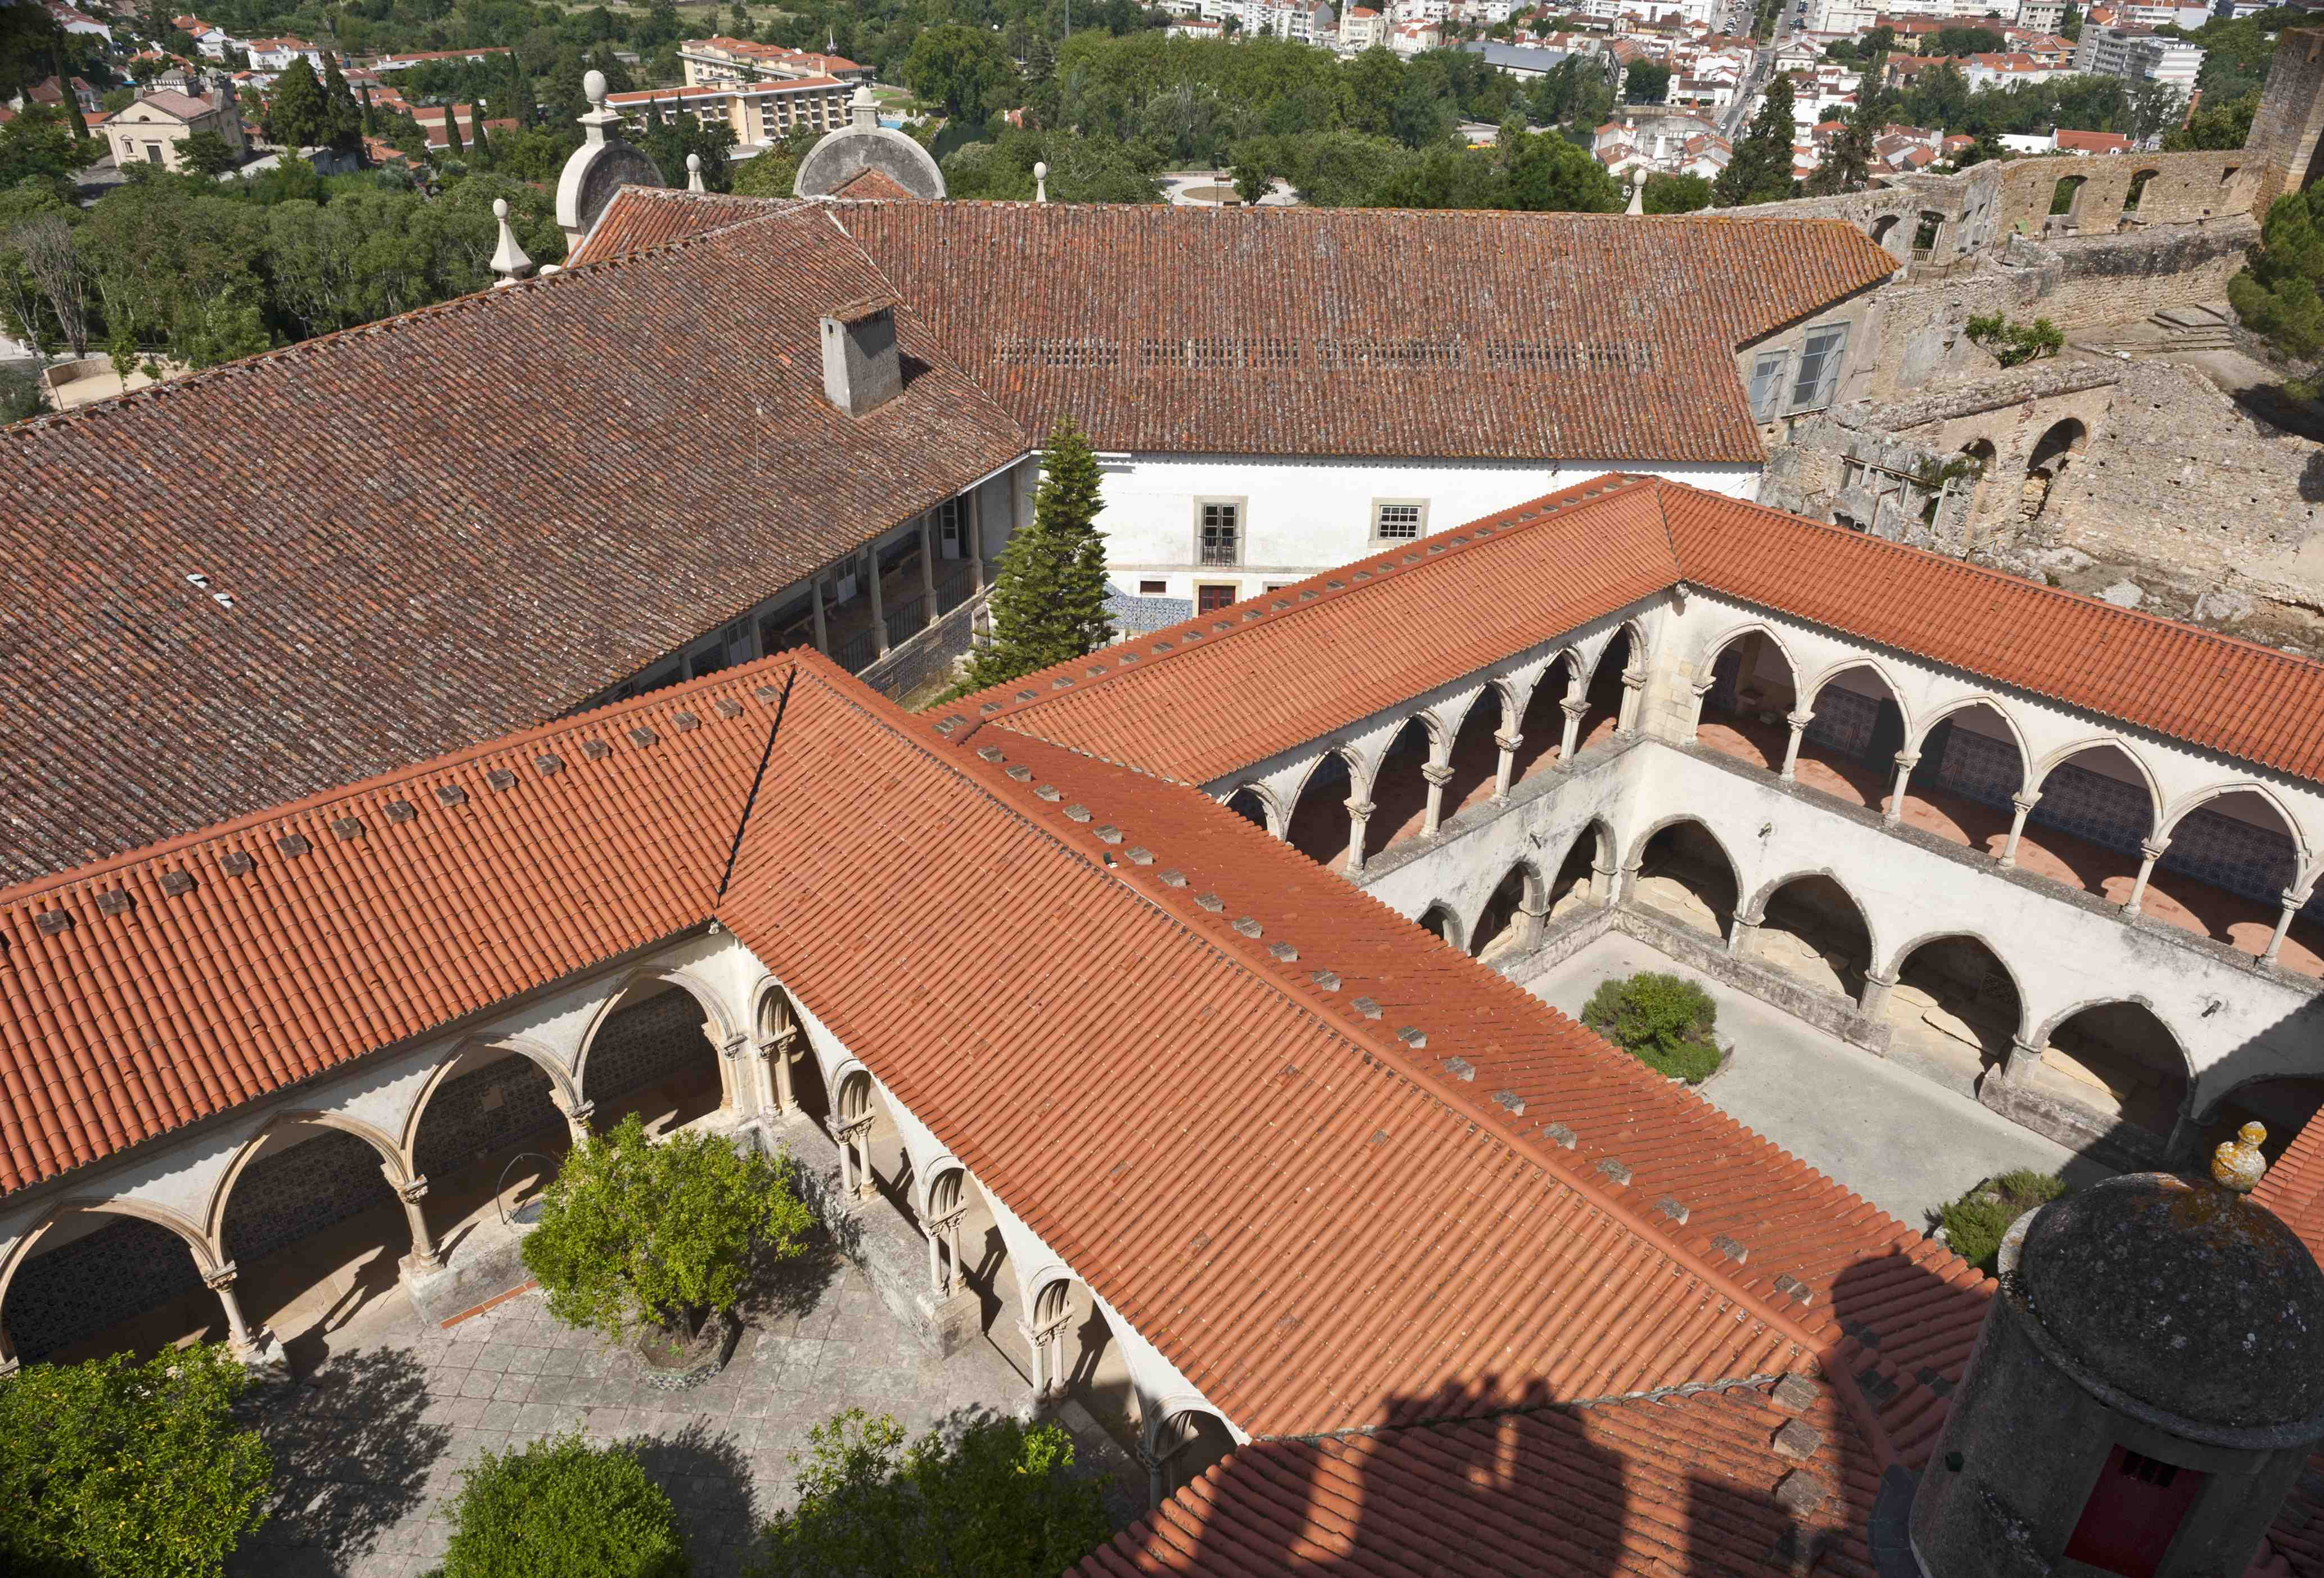 Top view of the Cloisters Cemetery and adjacent wash the courtyard of Botica of Christ Convent